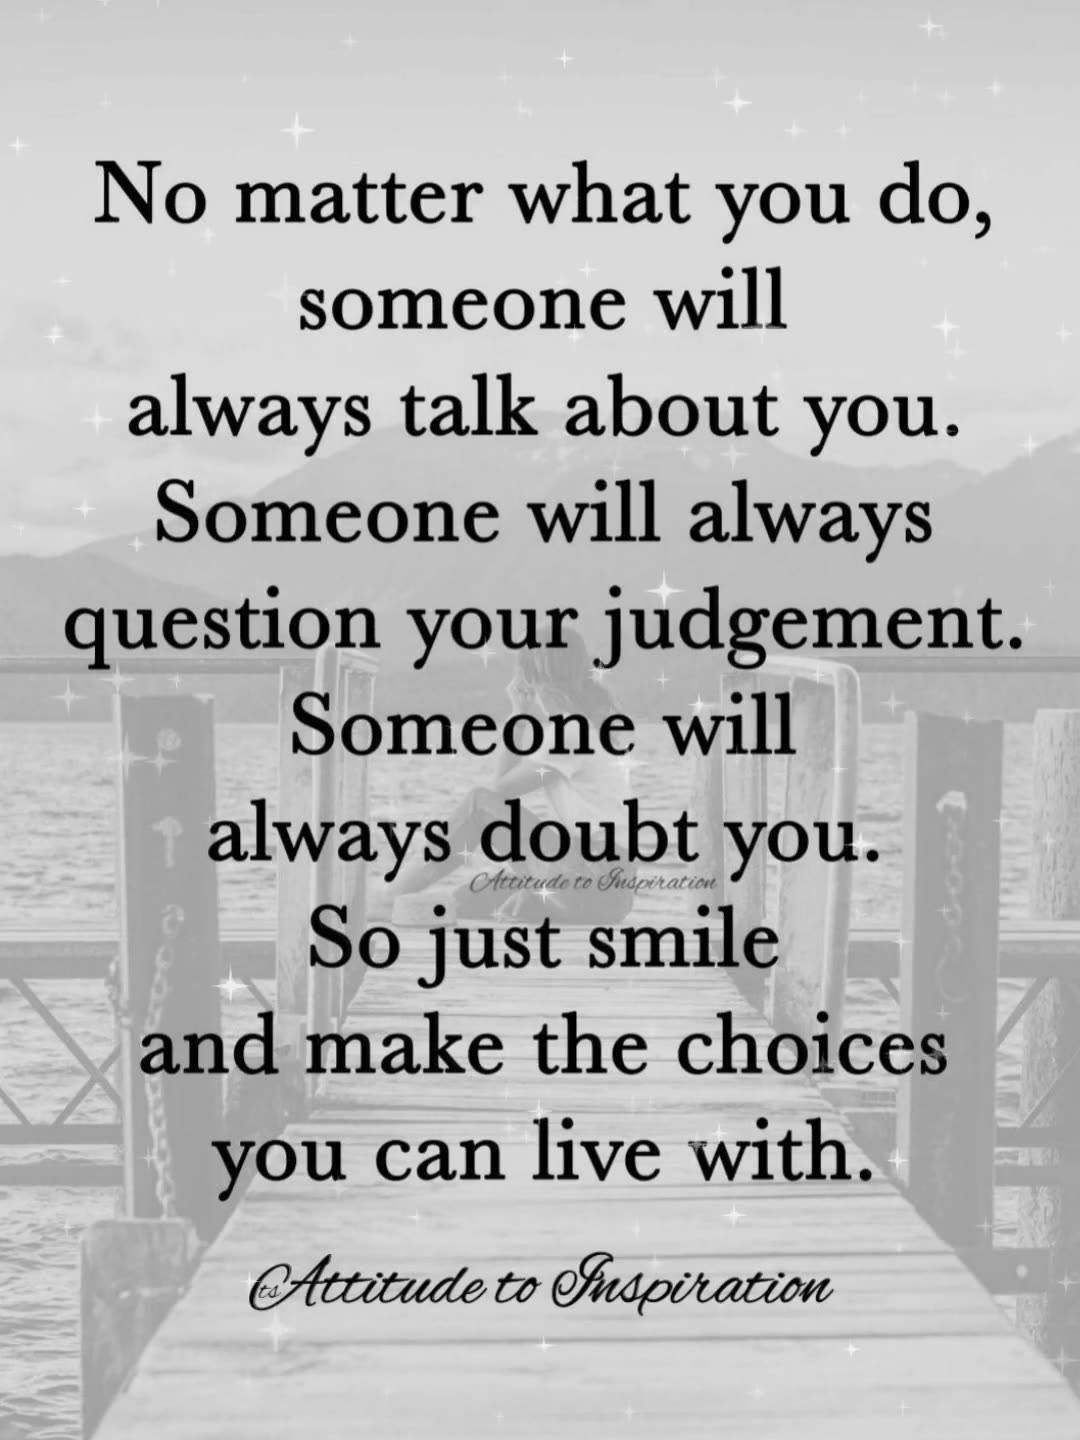 No matter what you do, someone will always talk about you …